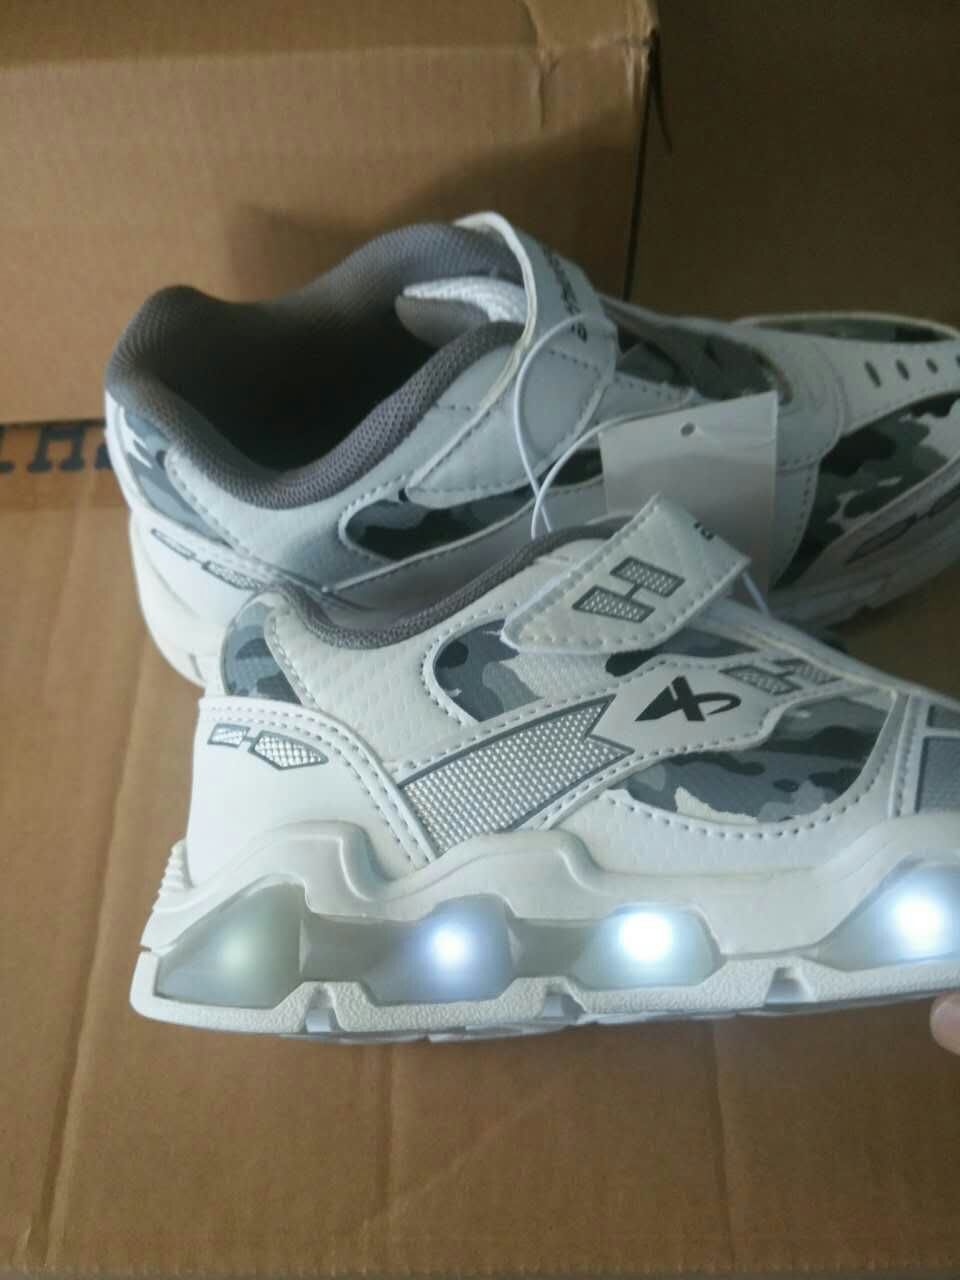 BSWLED11508 New offers Led shoe light Wholesale Cheap Children Sports Flashing LED Shoes